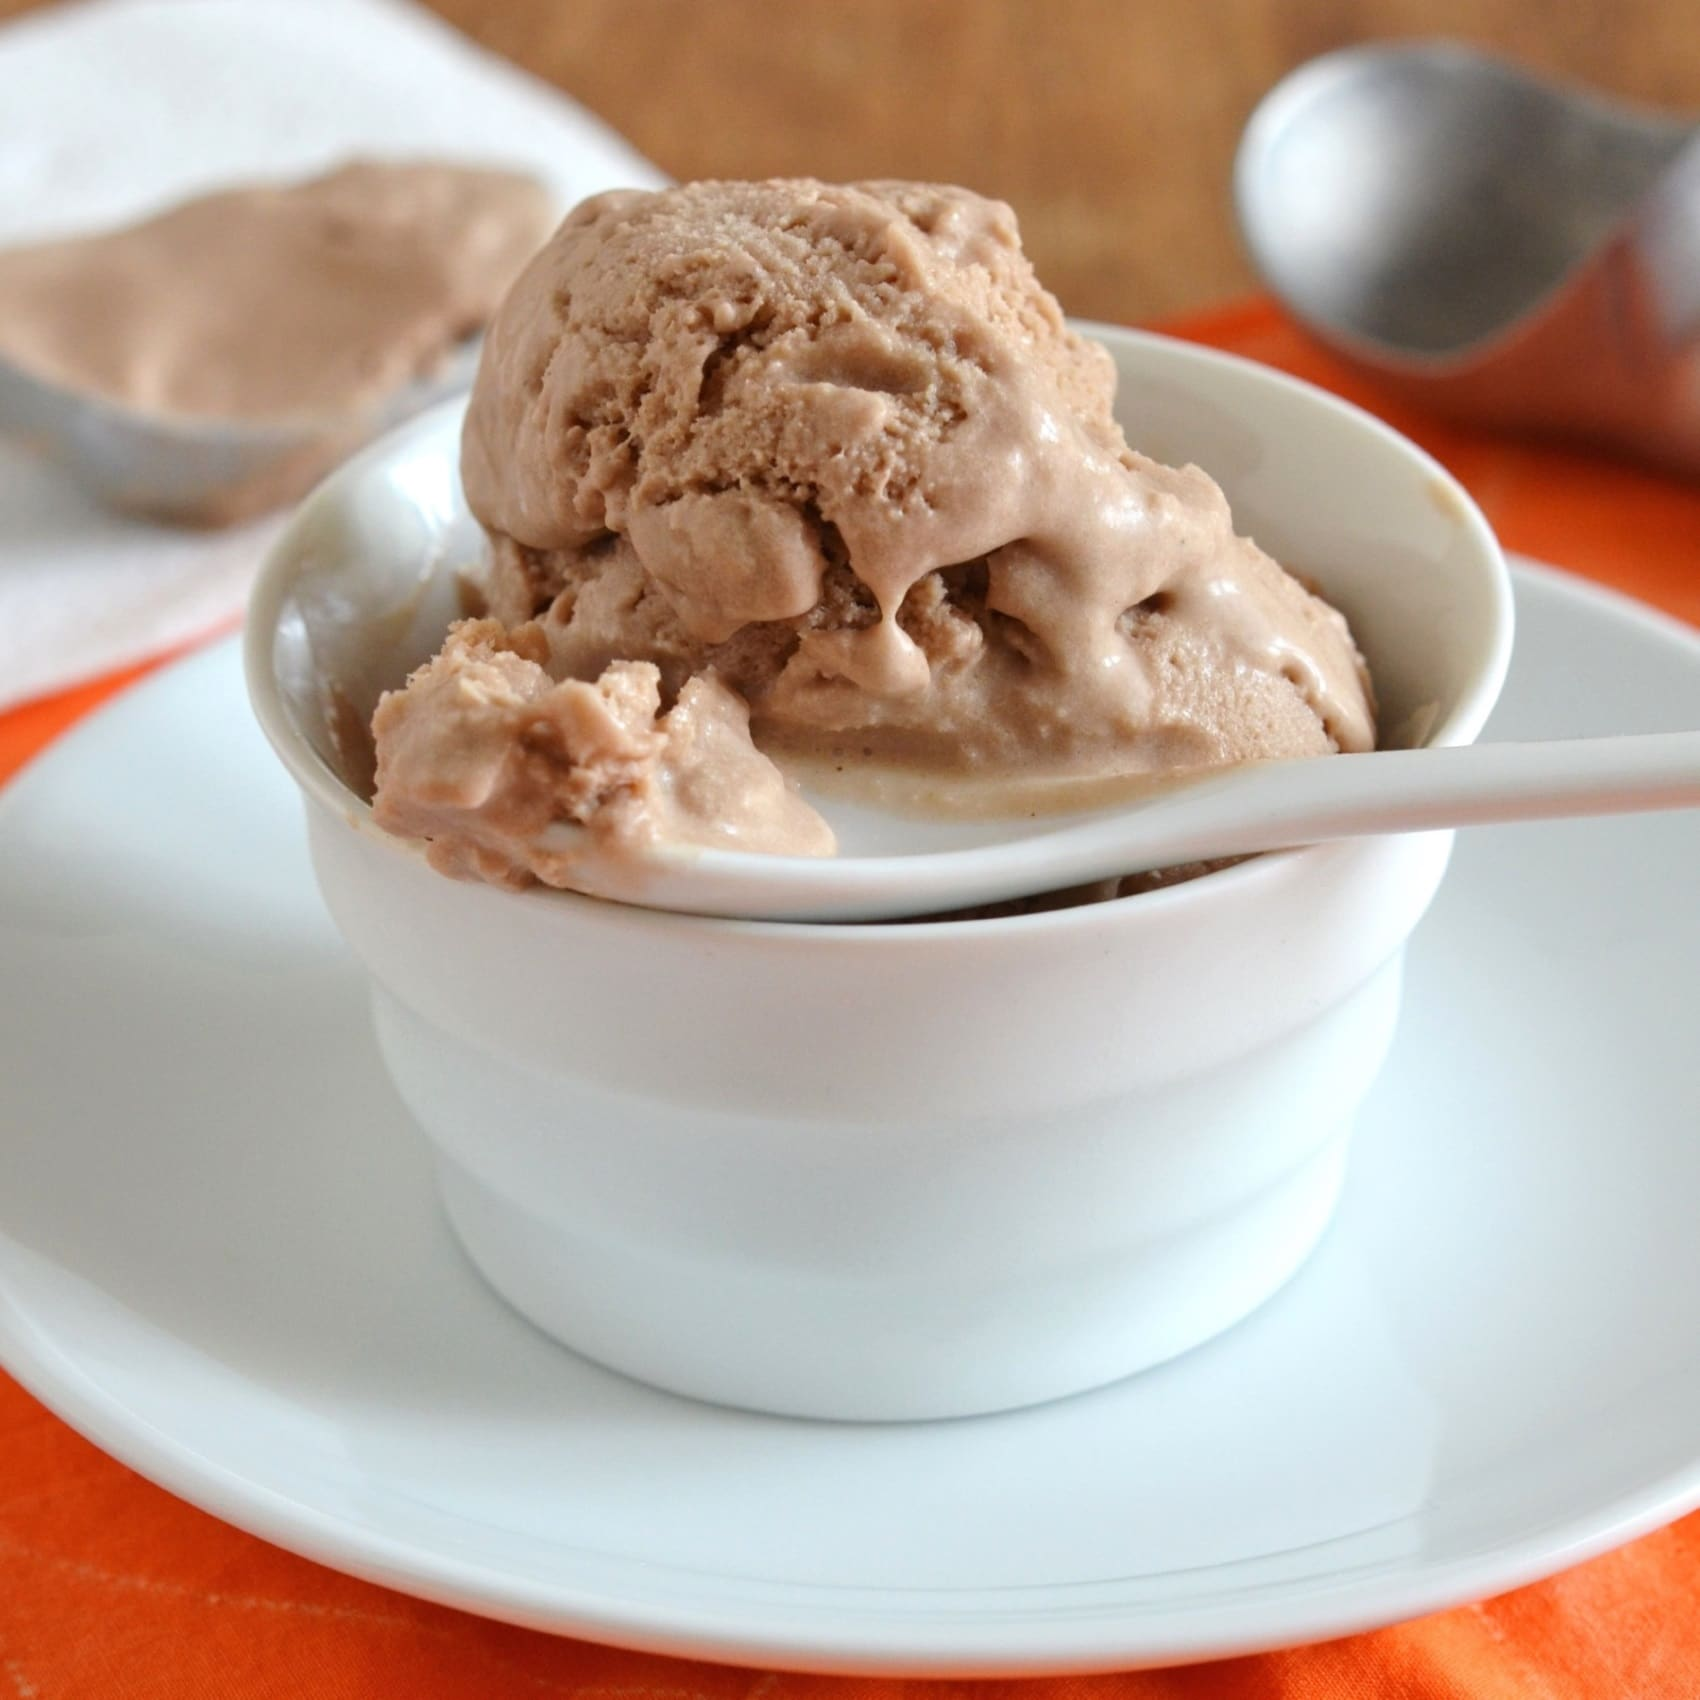 How to make the best chocolate banana ice cream 24 carrot kitchen chocolate banana ice cream 24 carrot kitchen ccuart Gallery